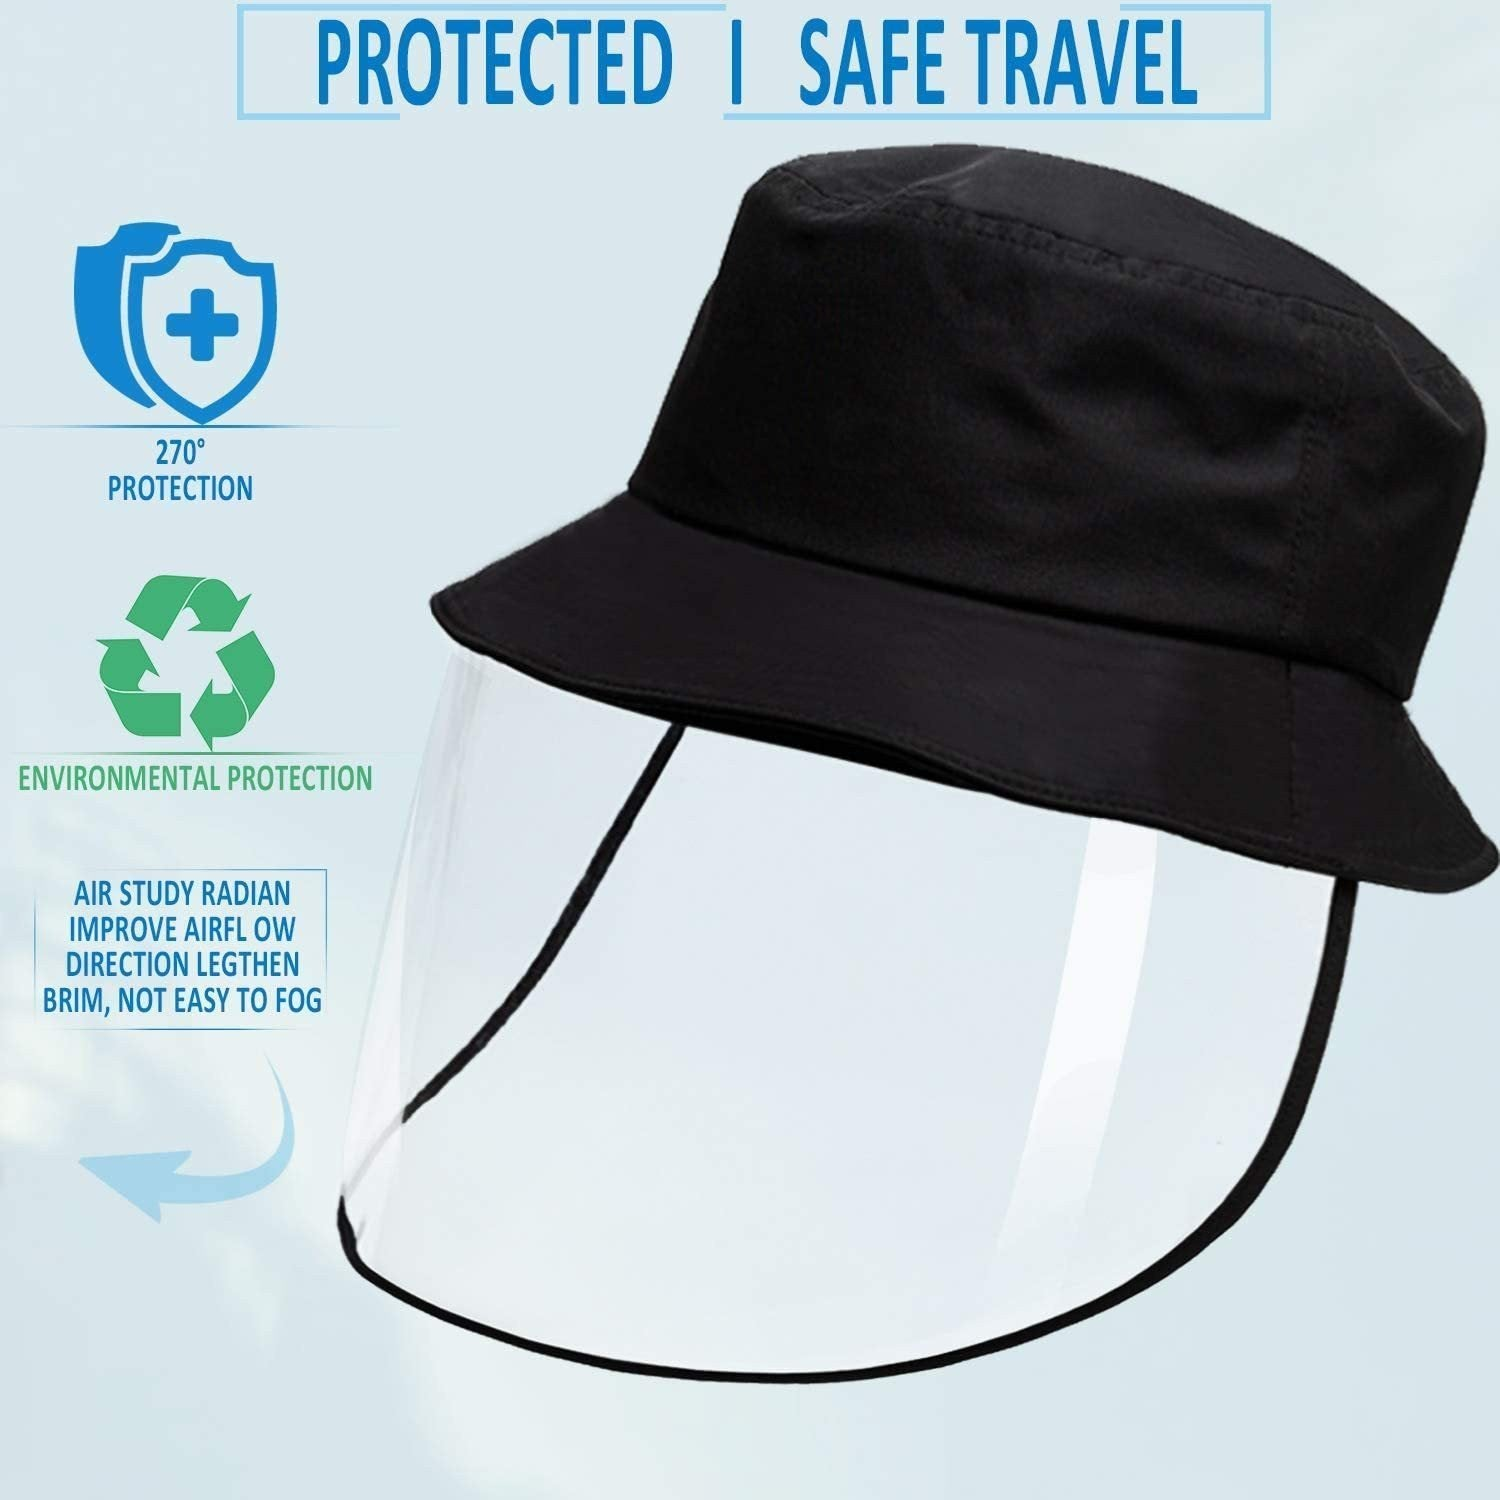 Reusable Face Shield Hat: Wind-proof, dust-proof, saliva-proof. - planetshopper.net